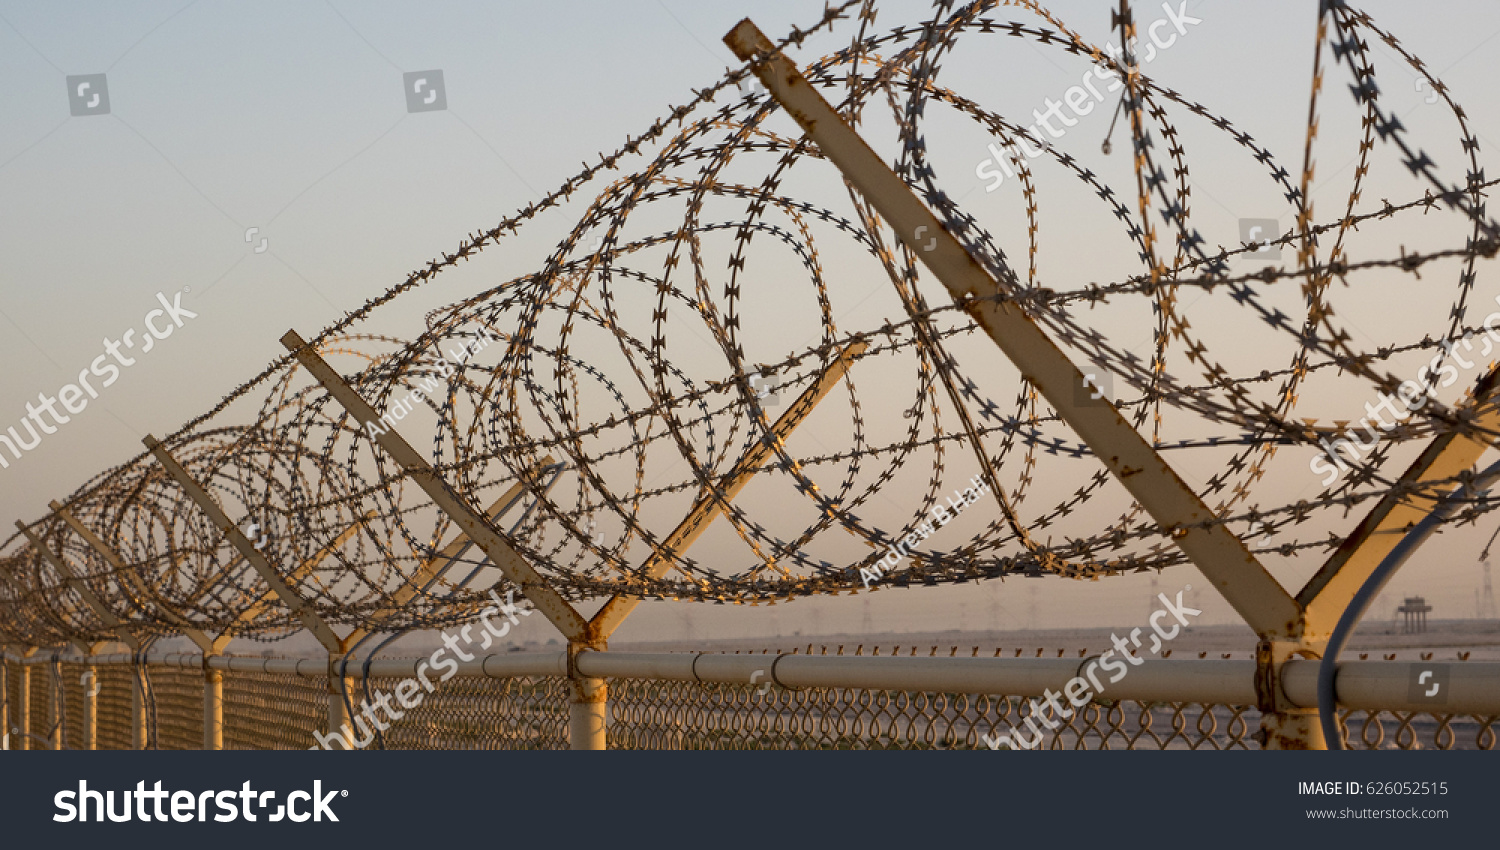 Concertina Wire Fence Middle Eastern Desert Stock Photo (Edit Now ...